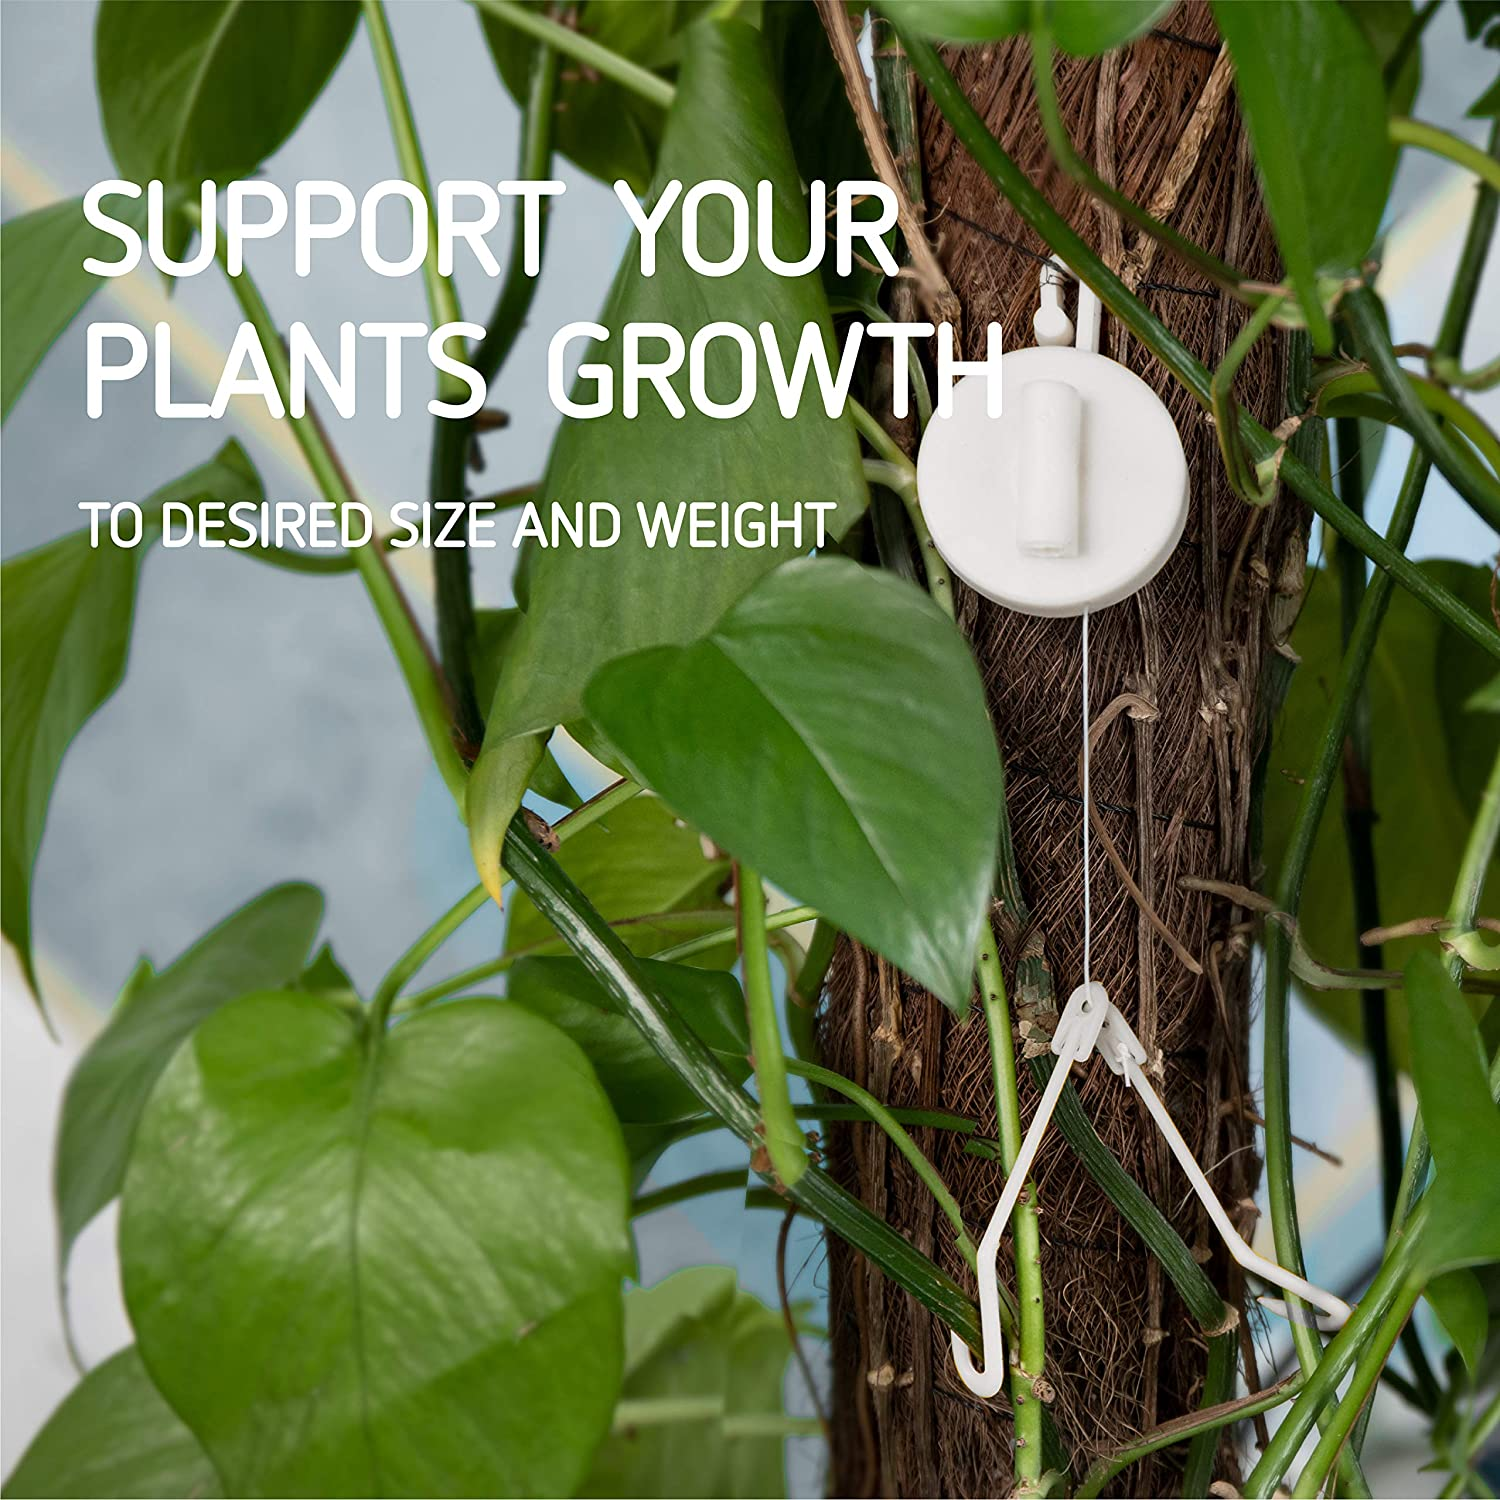 VIVOSUN Retractable Plant Yoyo with Stopper for Grow Support in Tent Garden and Hydroponics Pack of 12